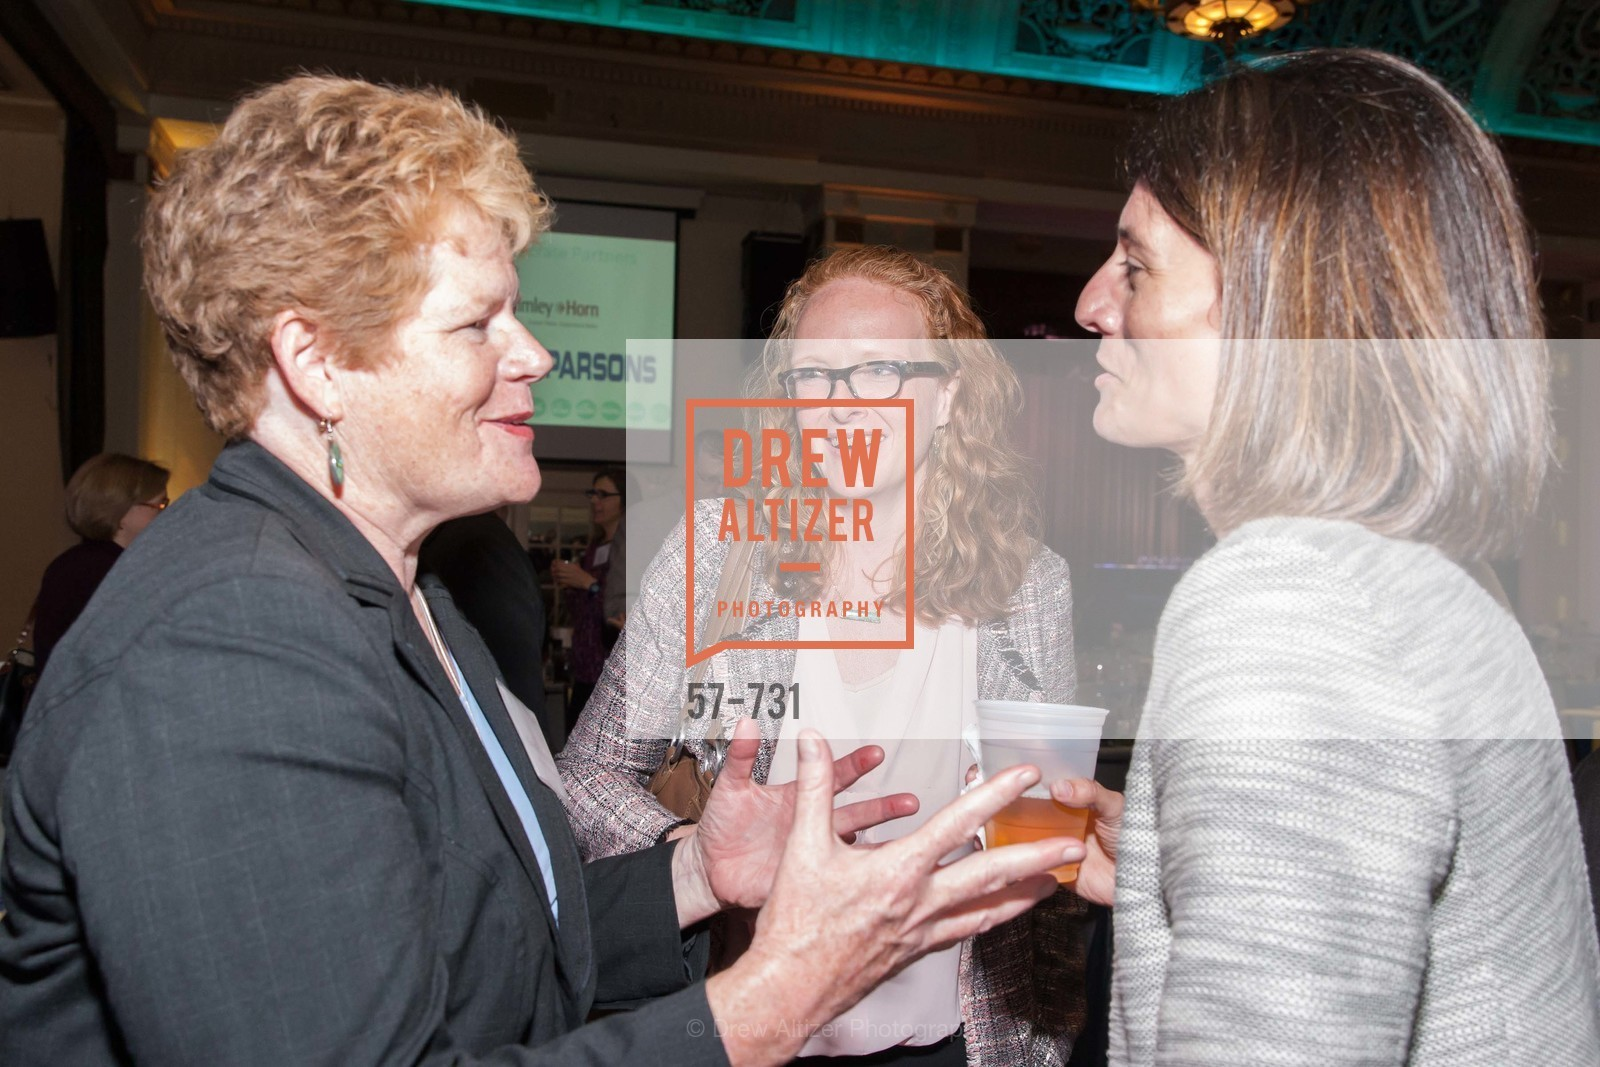 Grace Crunican, WOMEN'S TRANSPORTATION SEMINAR SF Bay Area Chapter Annual Scholarship Awards, US, May 15th, 2015,Drew Altizer, Drew Altizer Photography, full-service agency, private events, San Francisco photographer, photographer california